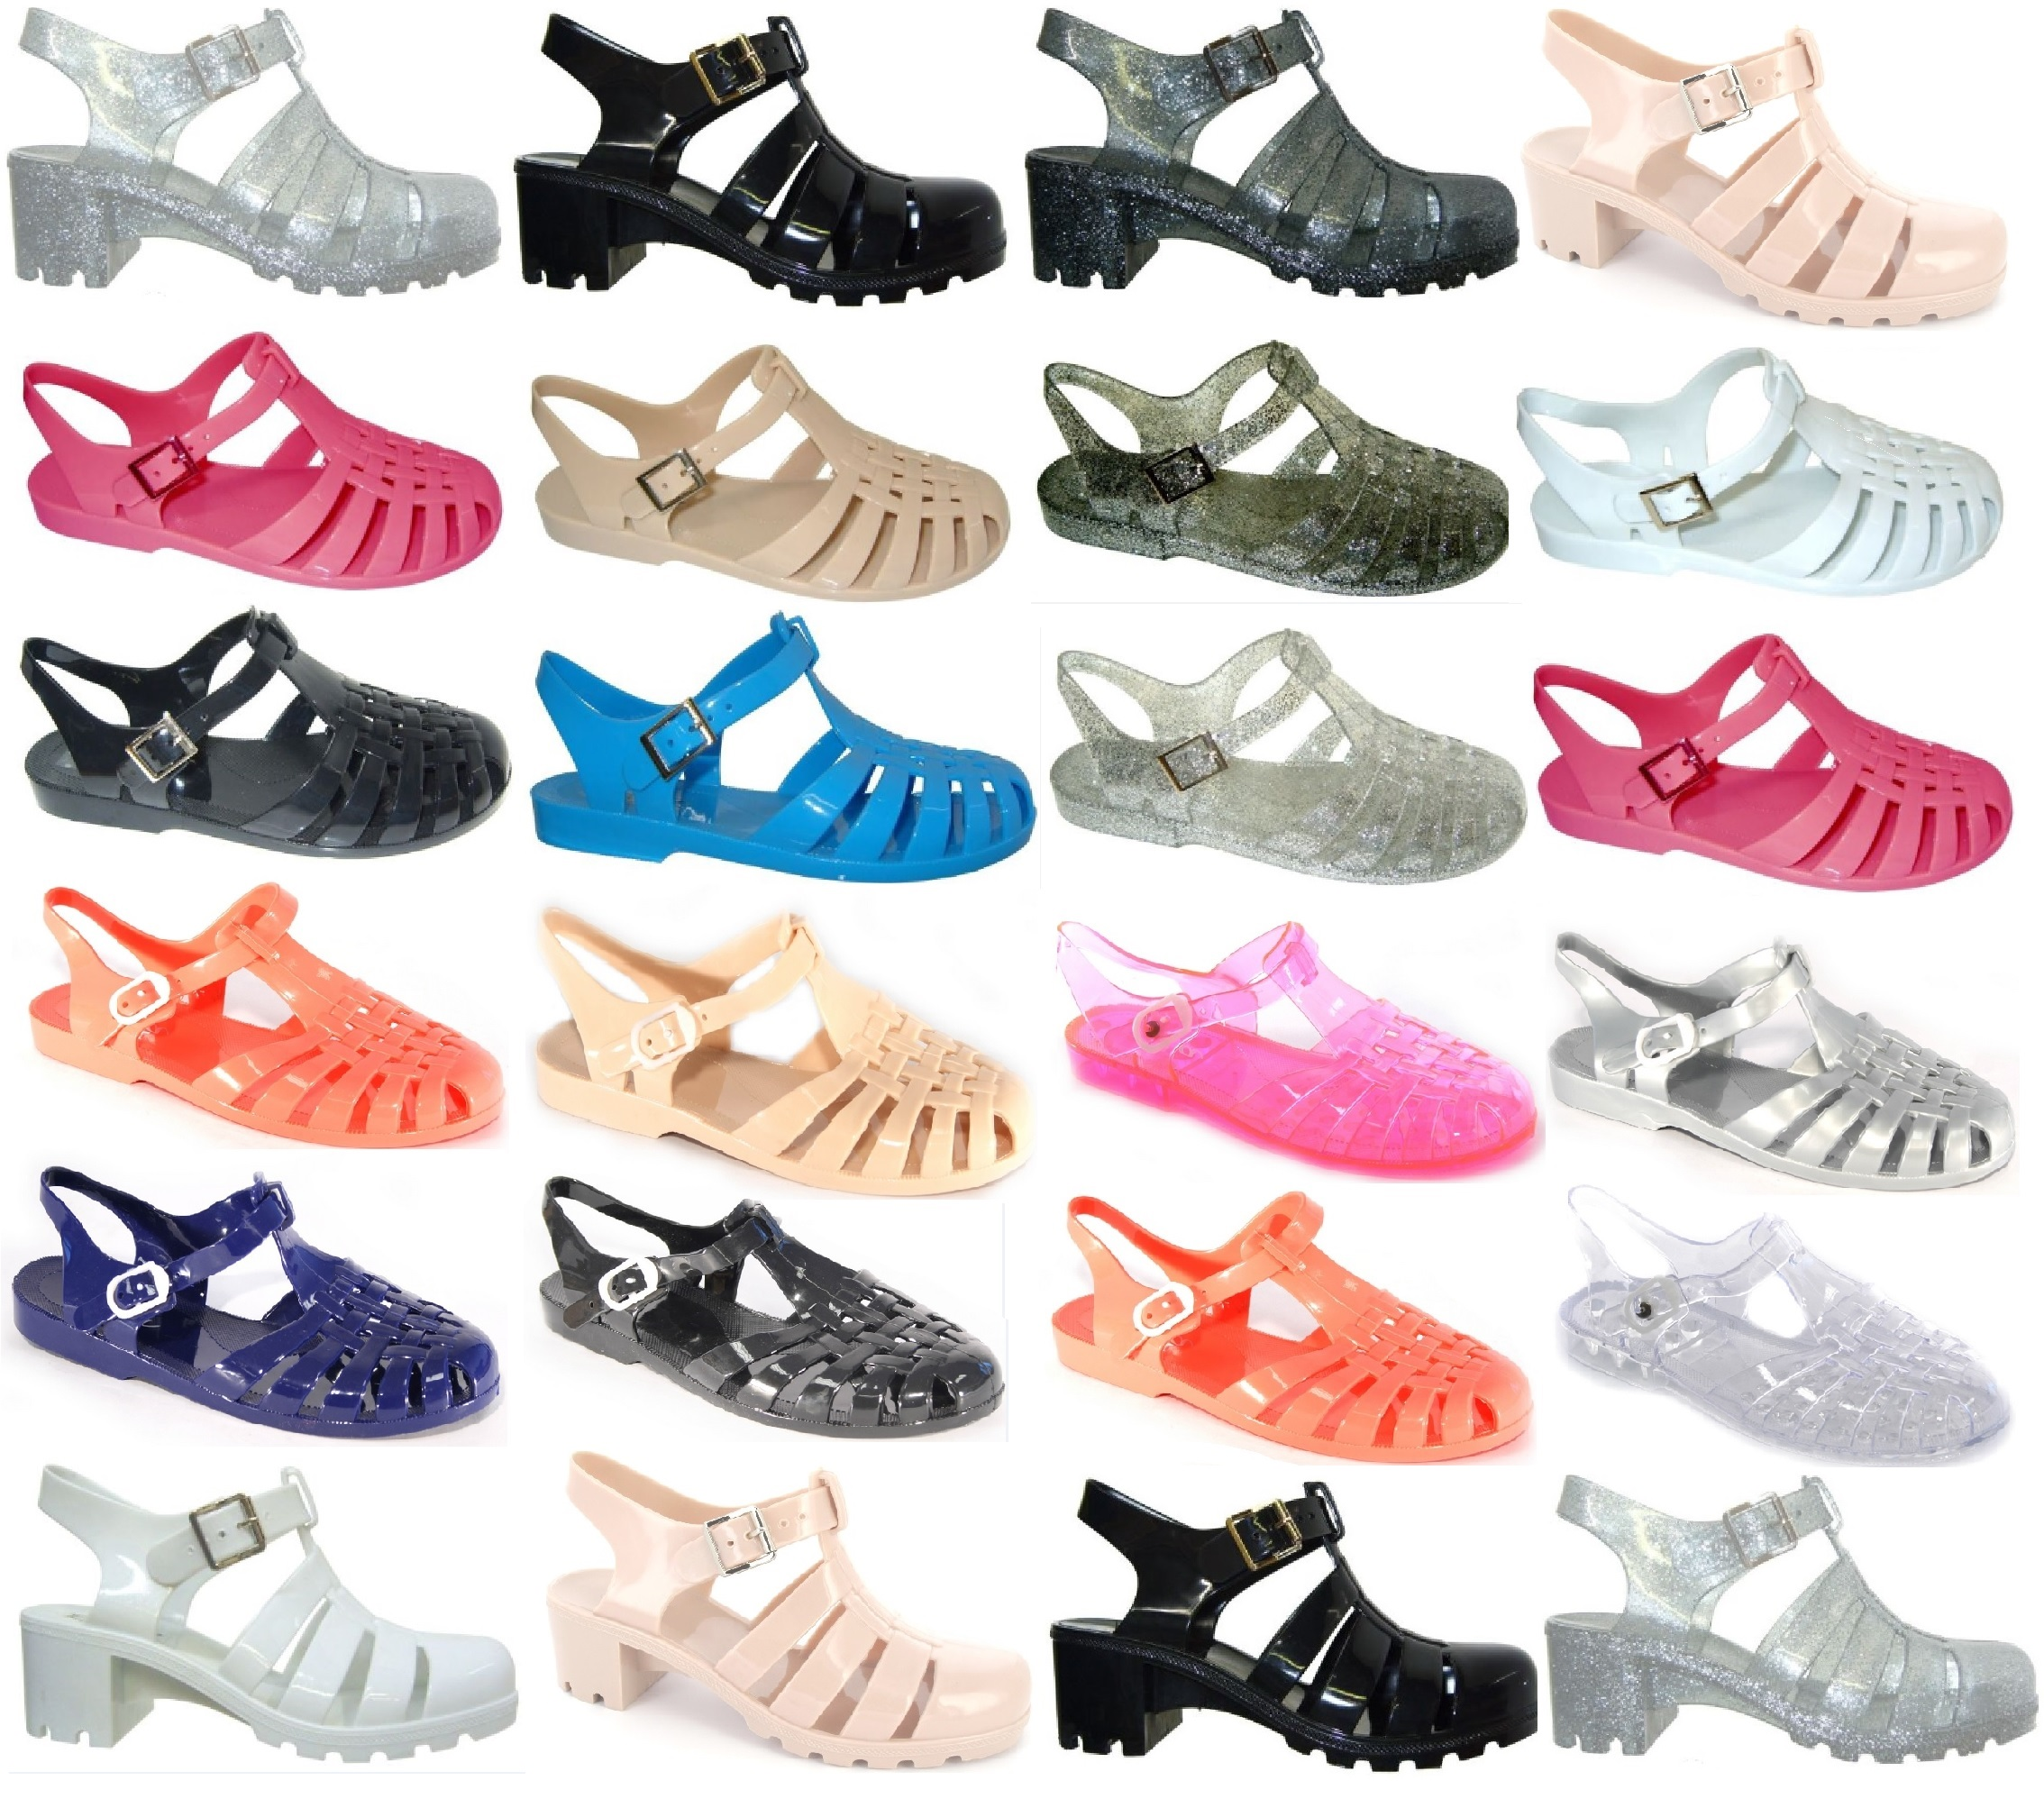 LADIES WOMENS JELLY SANDAL FLAT SUMMER BEACH RETRO GIRLS FLIP FLOPS SANDALS SIZE